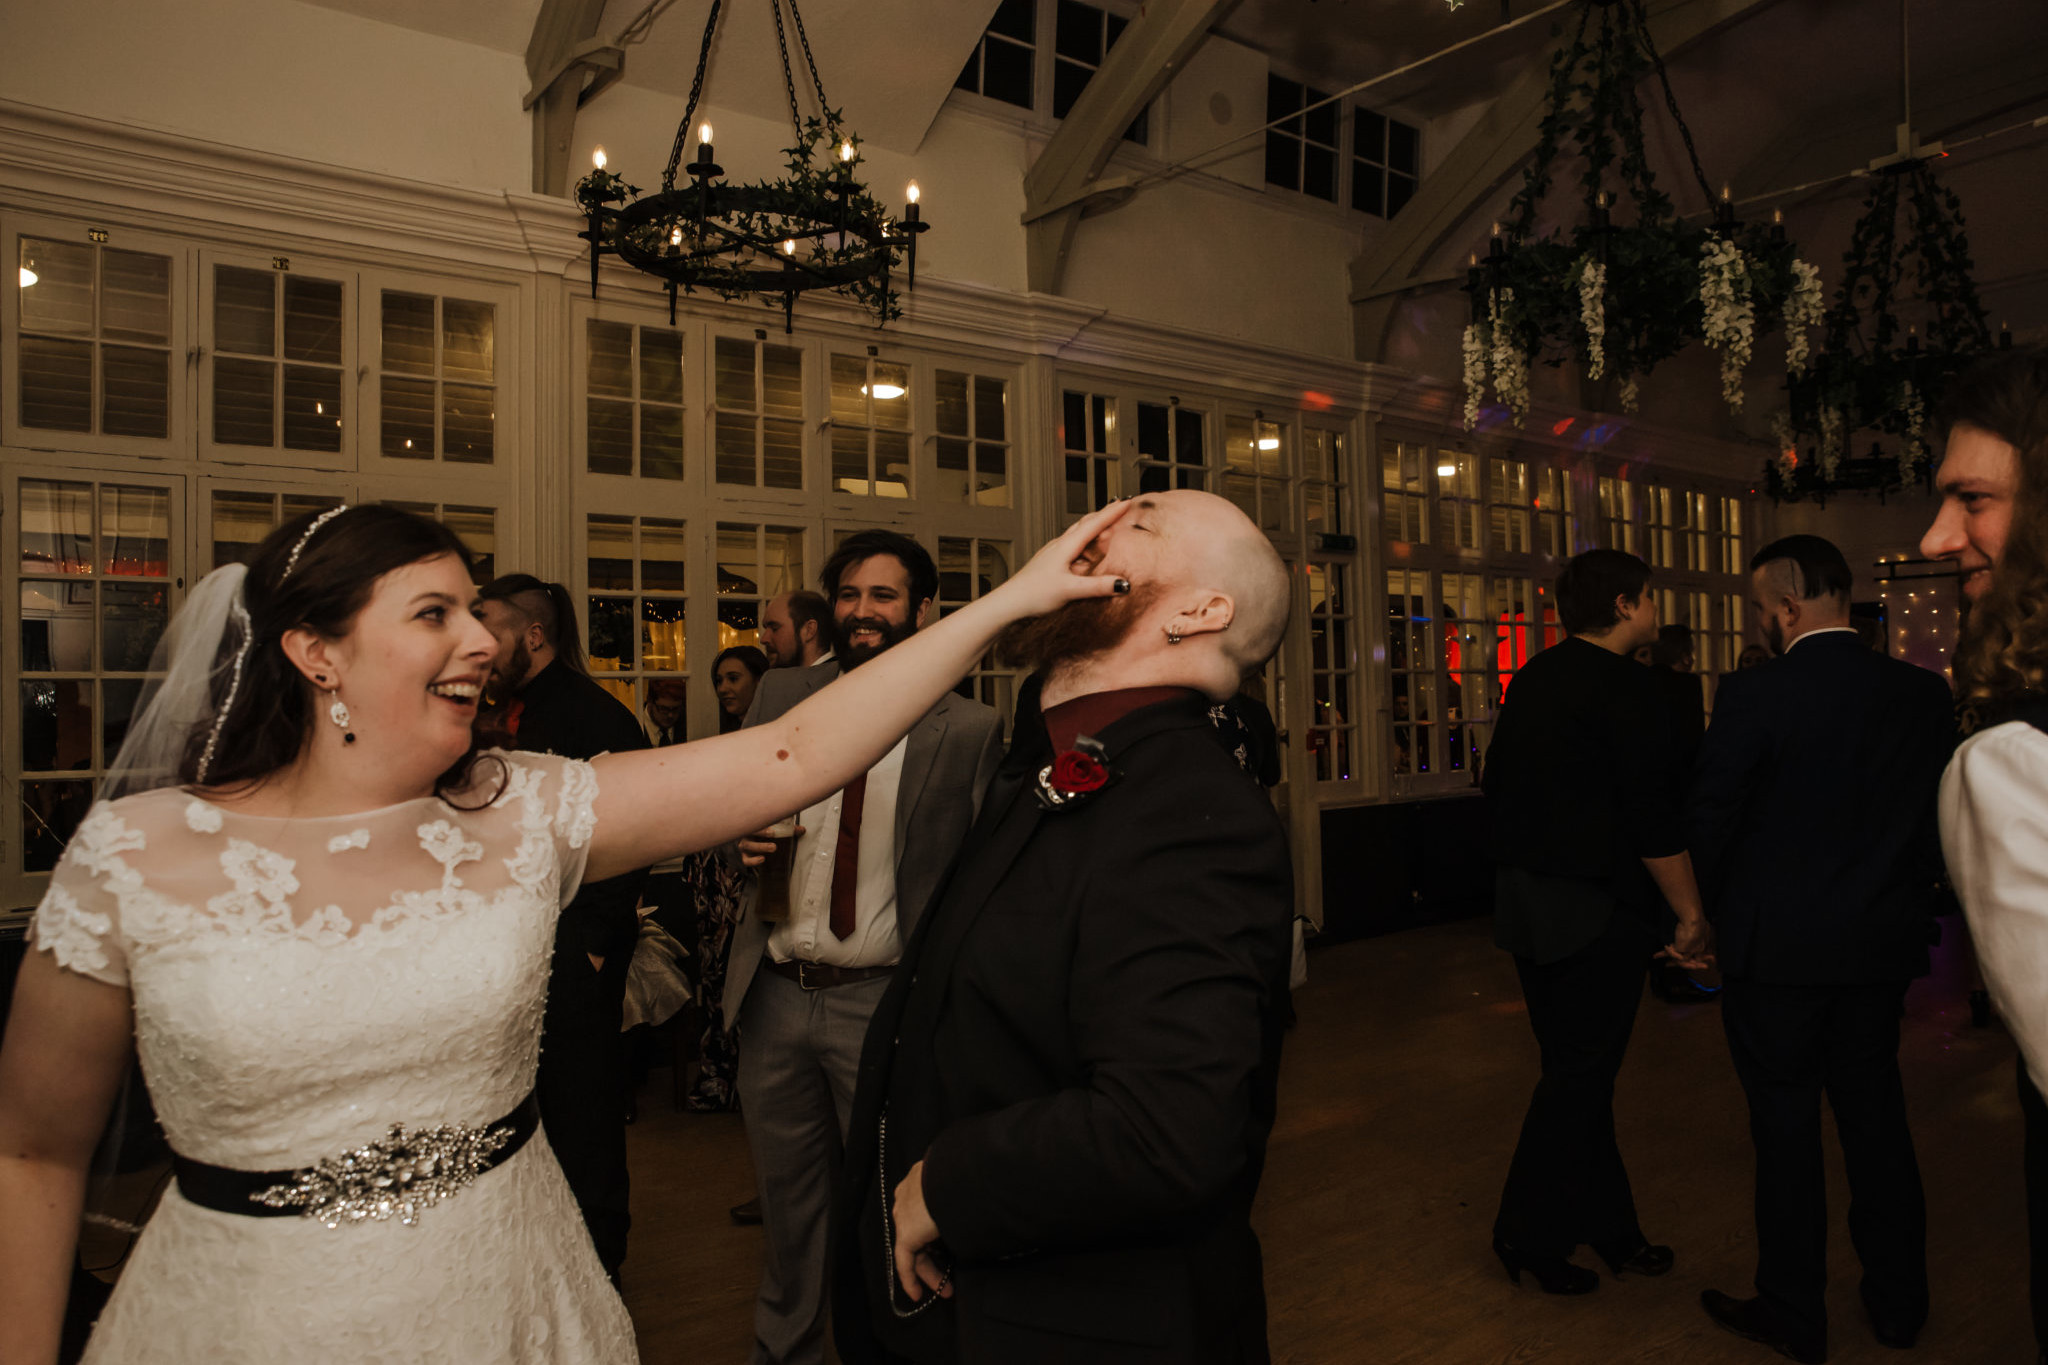 Wedding first dance at the Shenley Cricket club